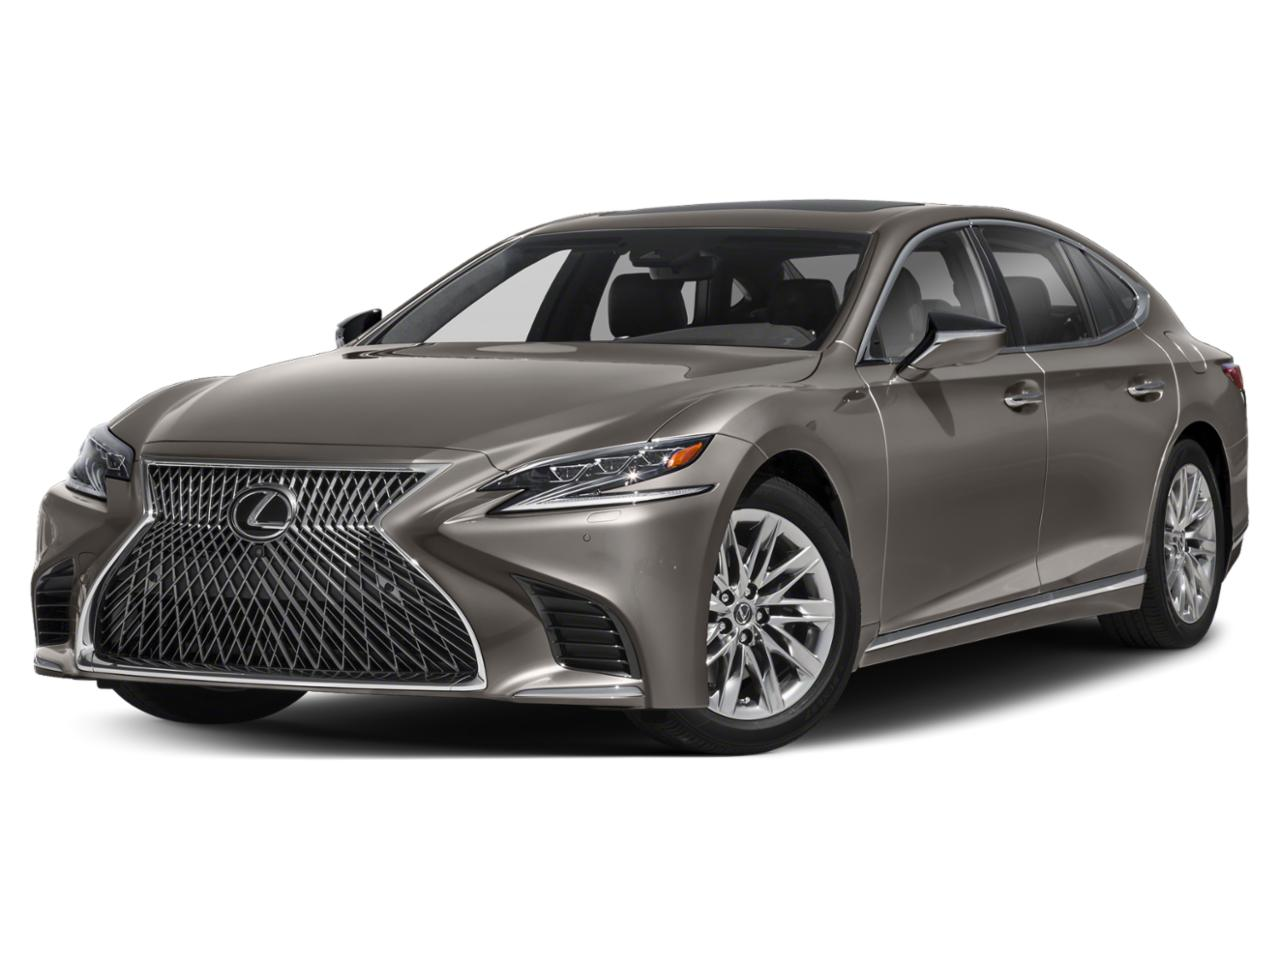 2020 Lexus LS 500 Vehicle Photo in Fort Worth, TX 76132